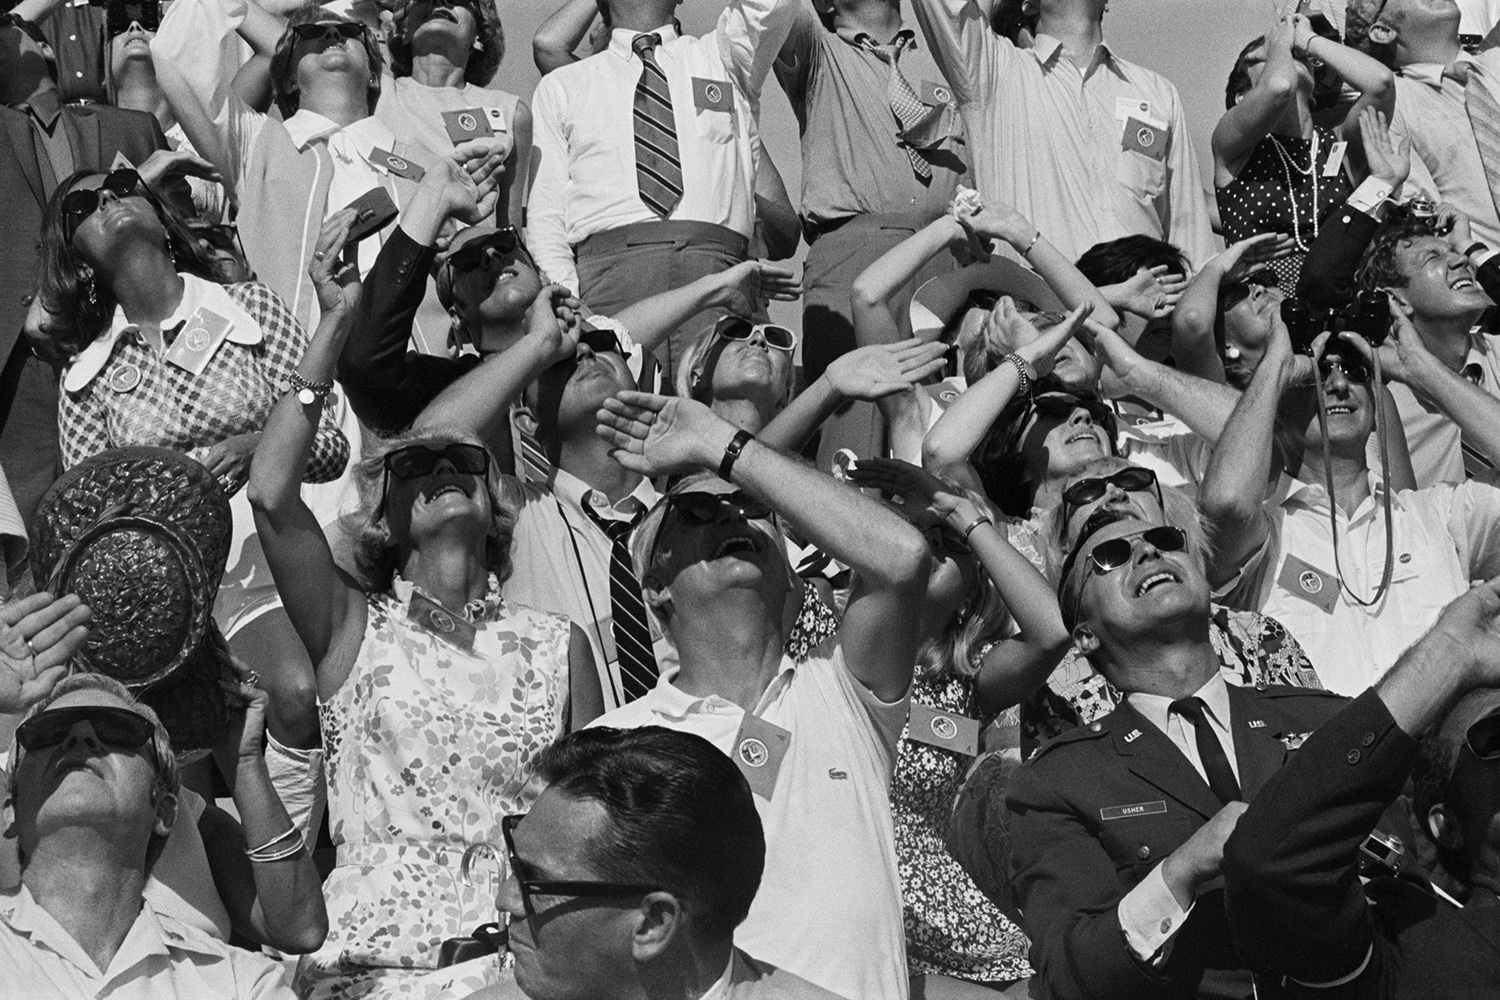 People watch the Apollo 15 rocket launch.